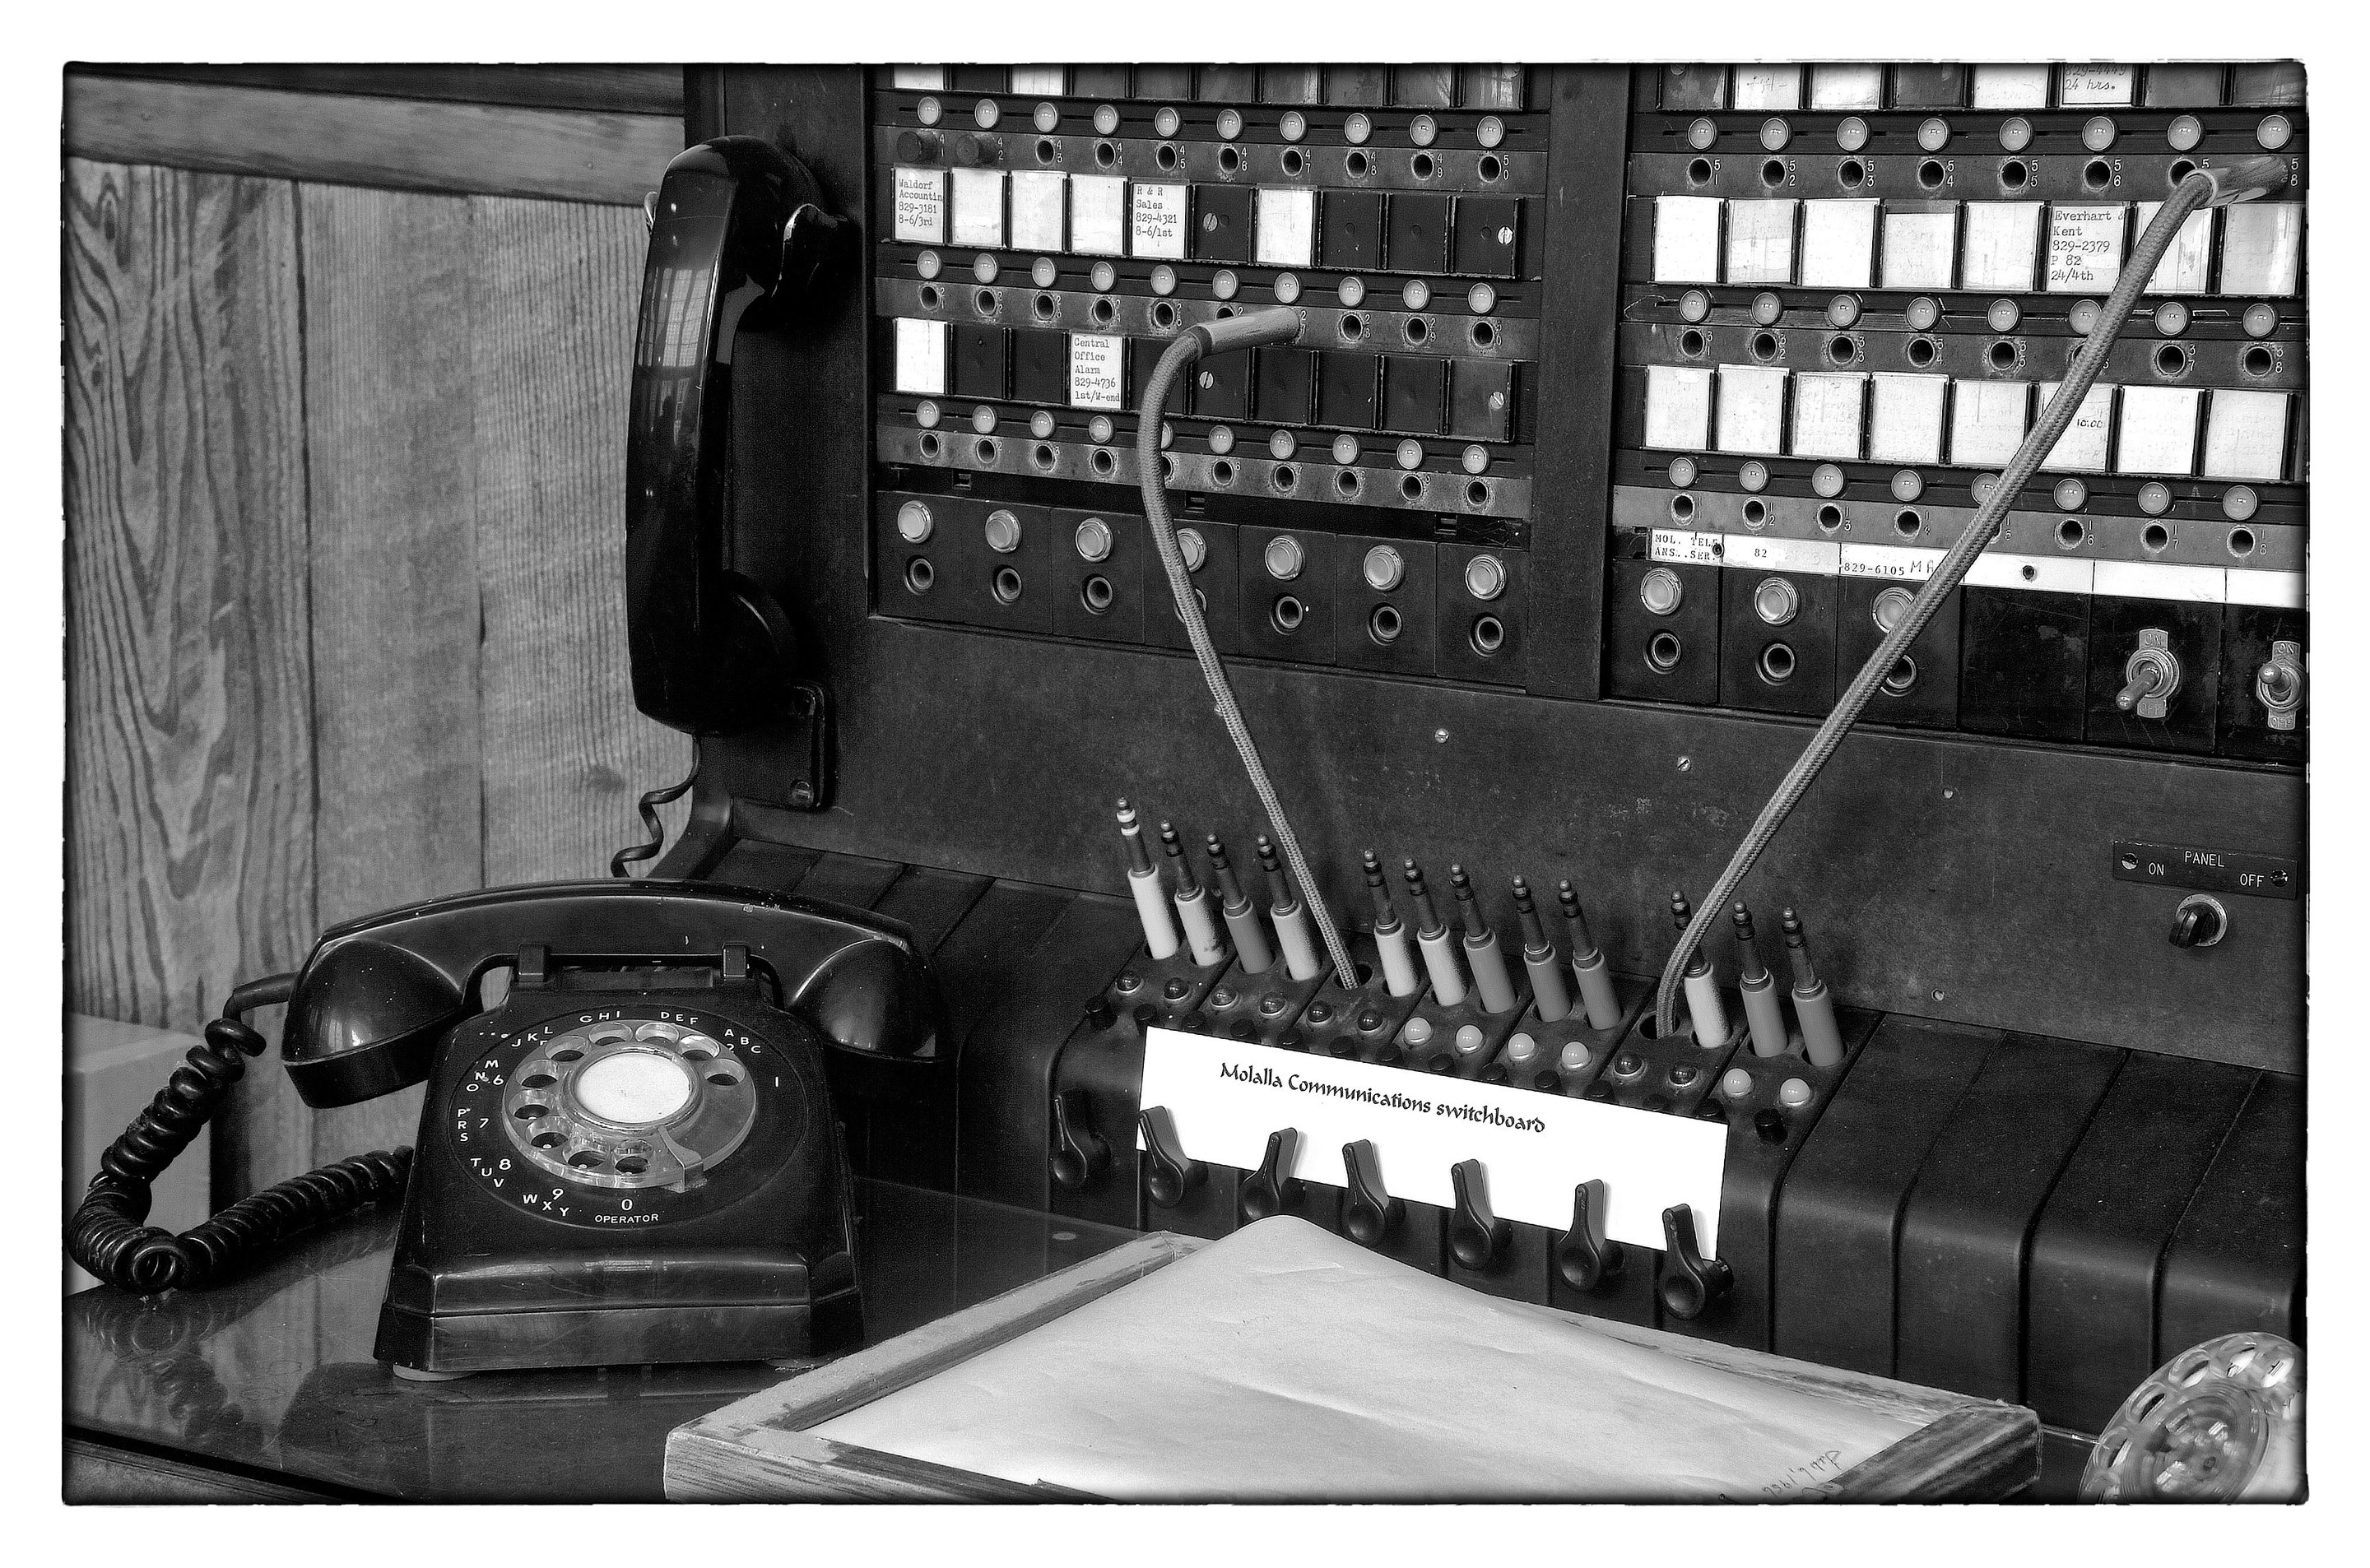 a house phone home phones way to stay connected at home howlandlinep.jpg